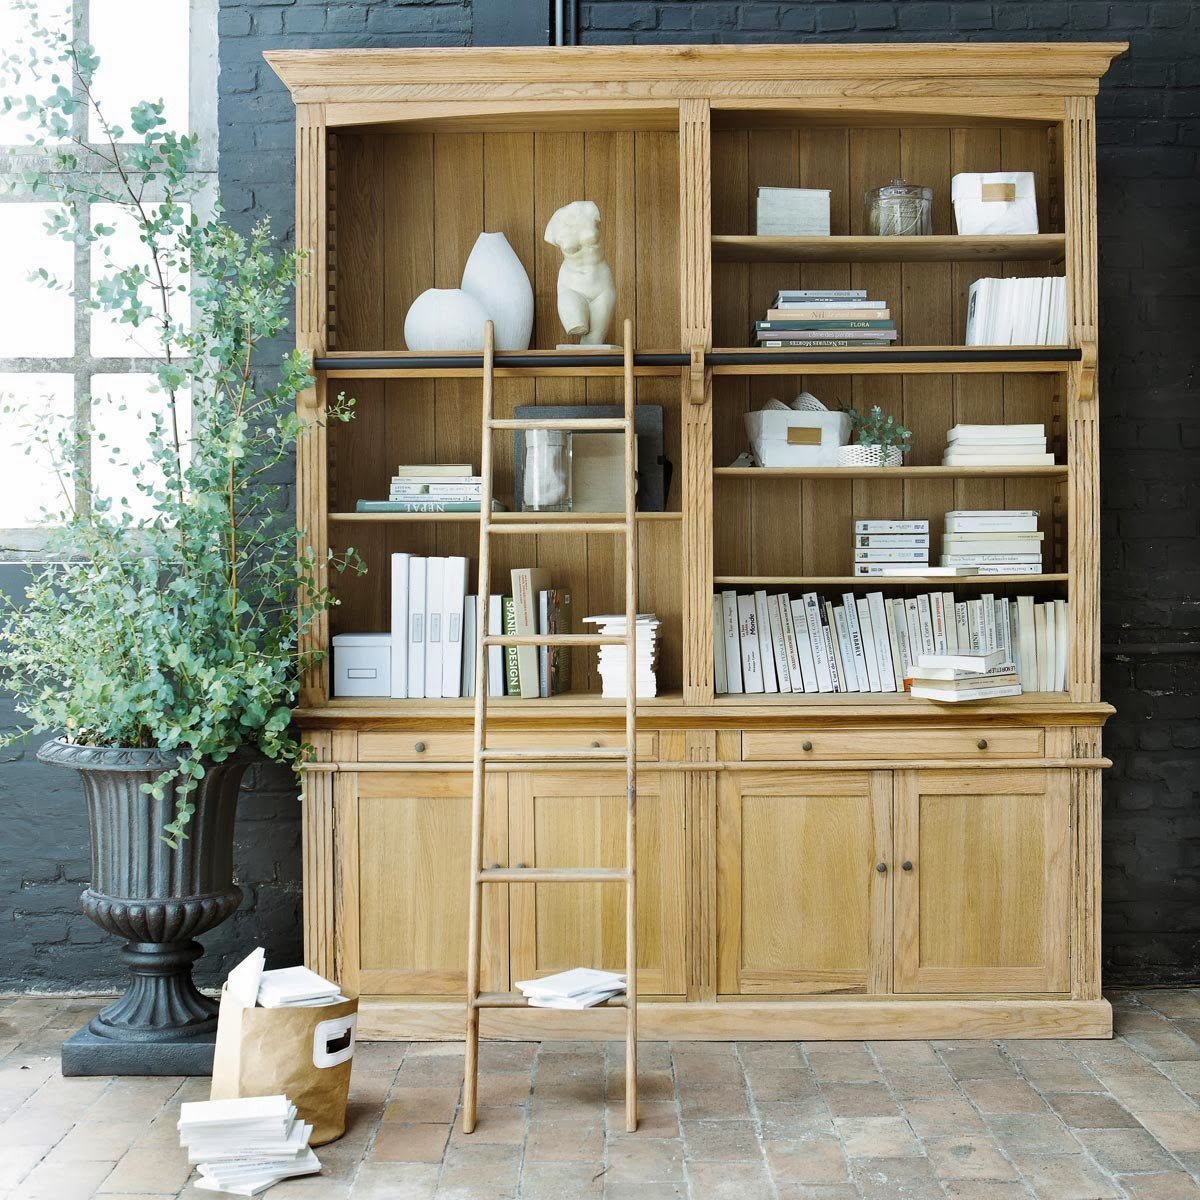 sketchup texture trends the charm of rural chic bookcase